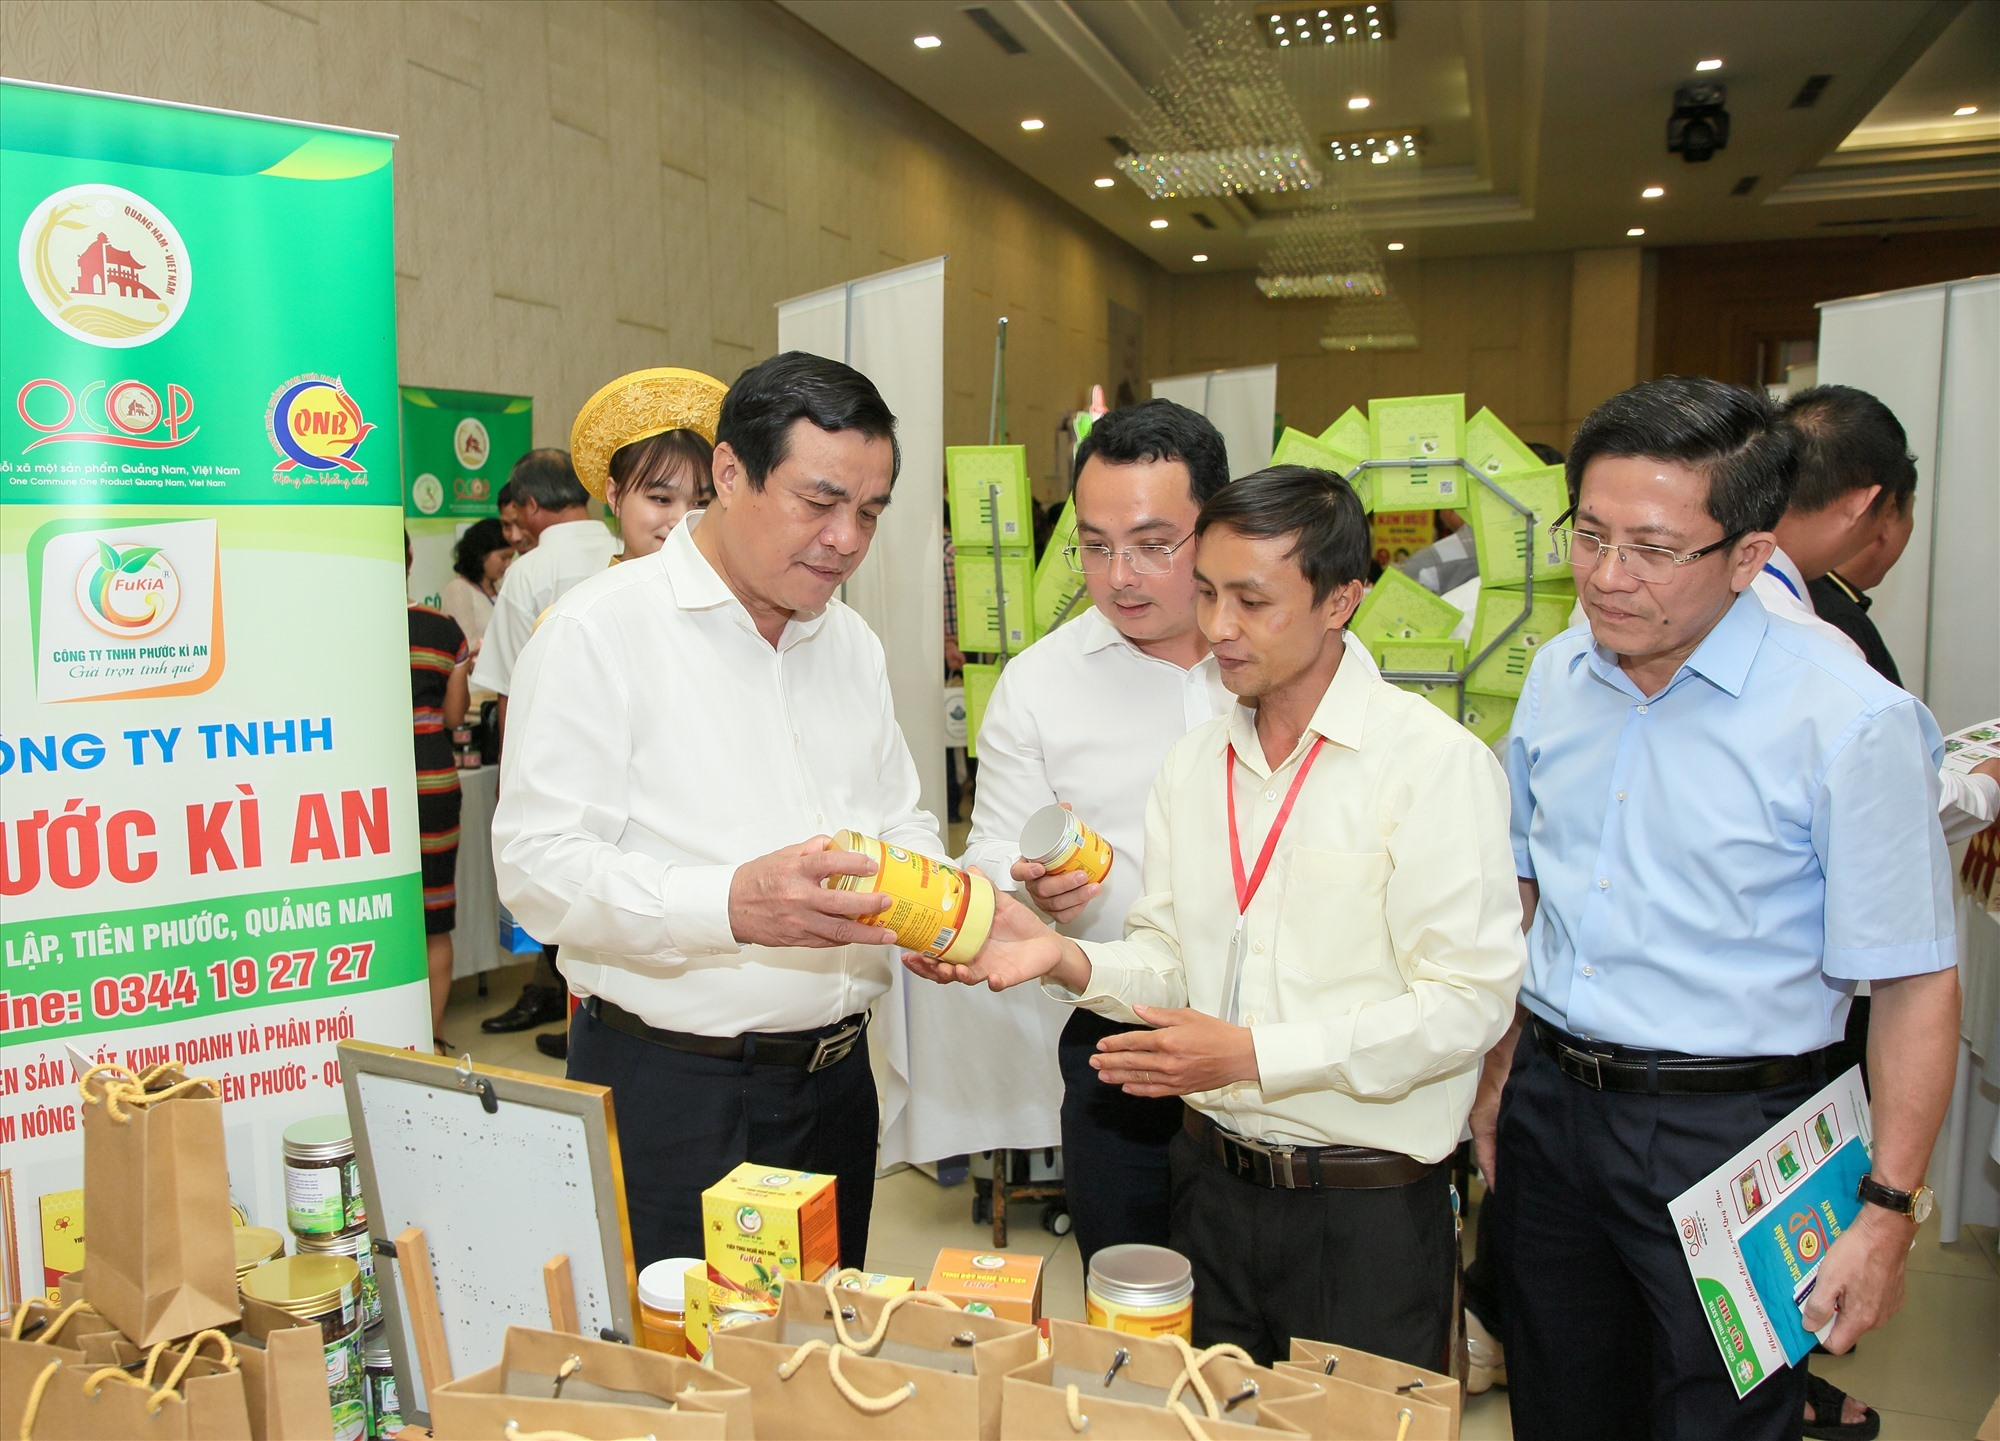 Start-up and OCOP products of Quang Nam businesses